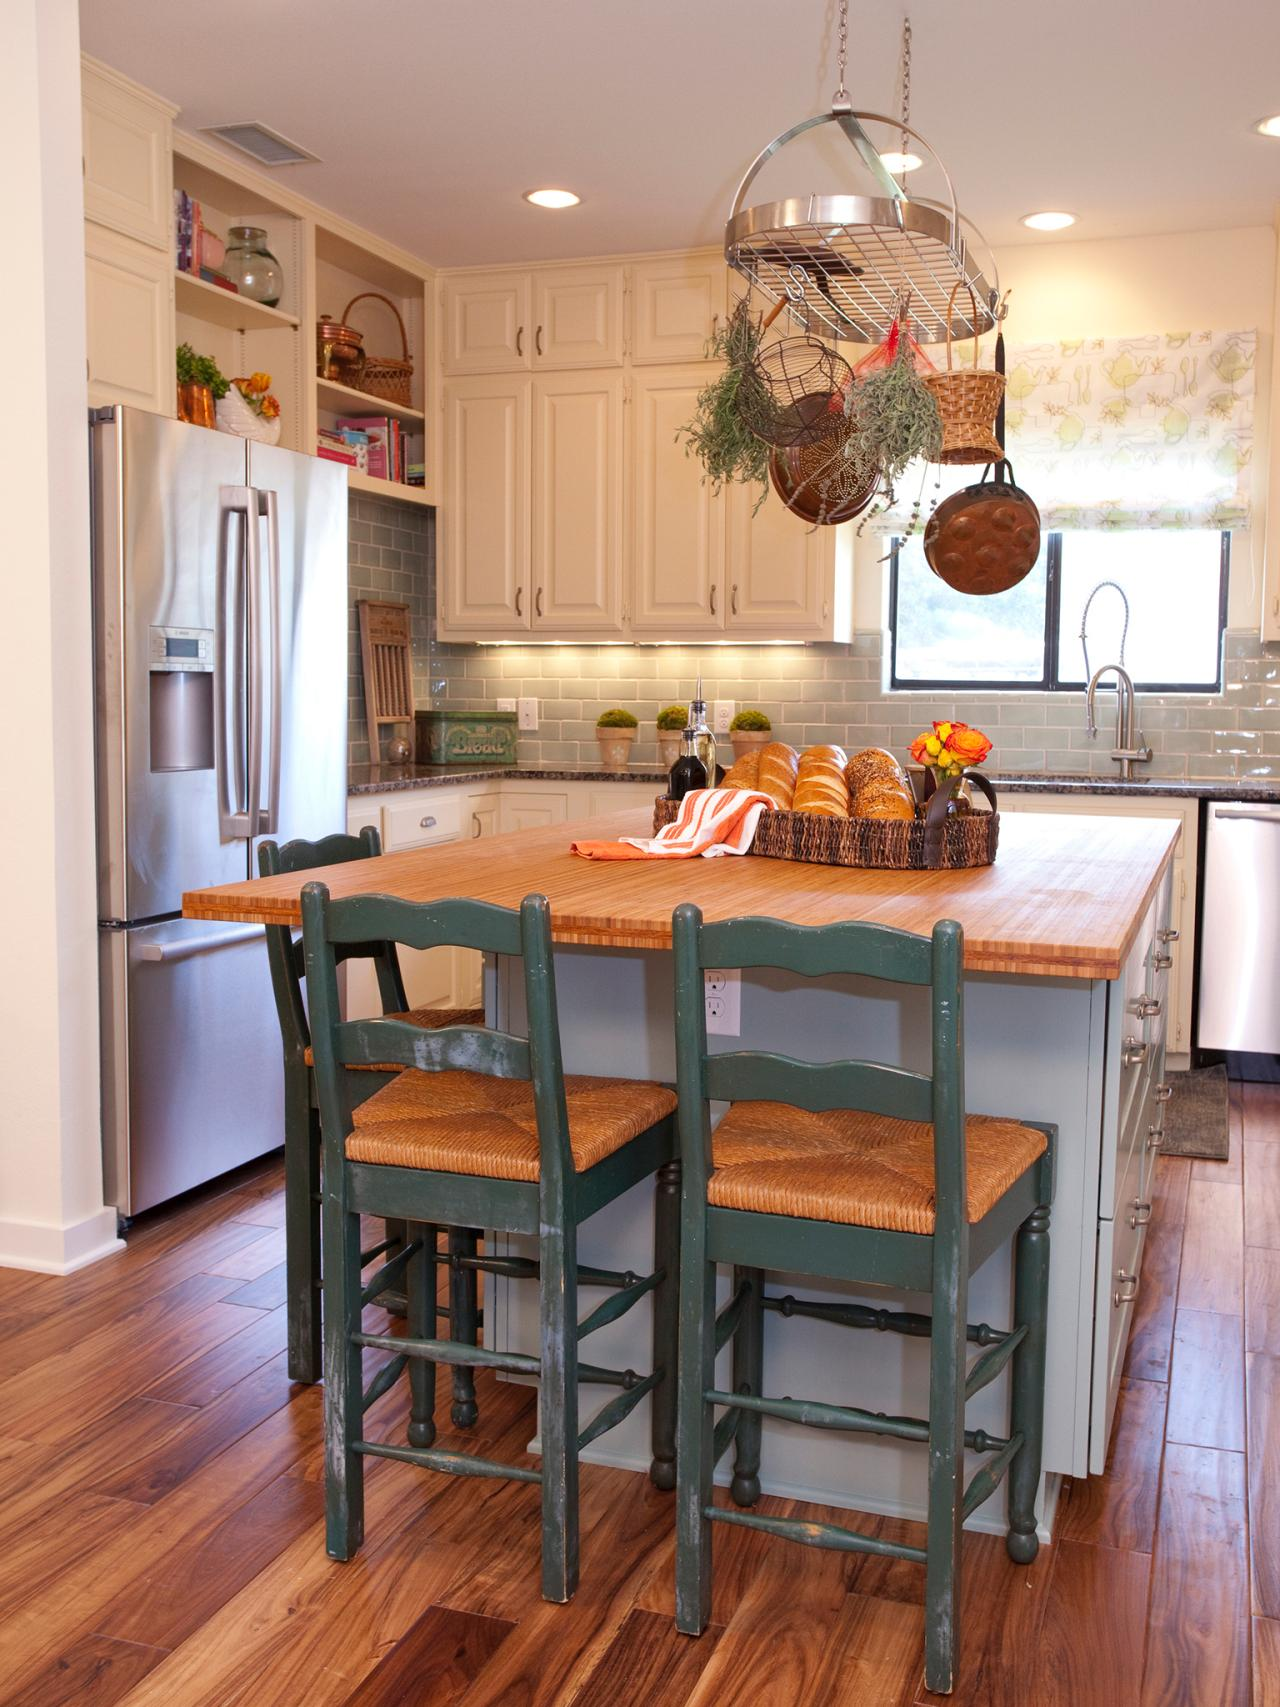 Awesome Tags: kitchen designs with islands for small kitchens